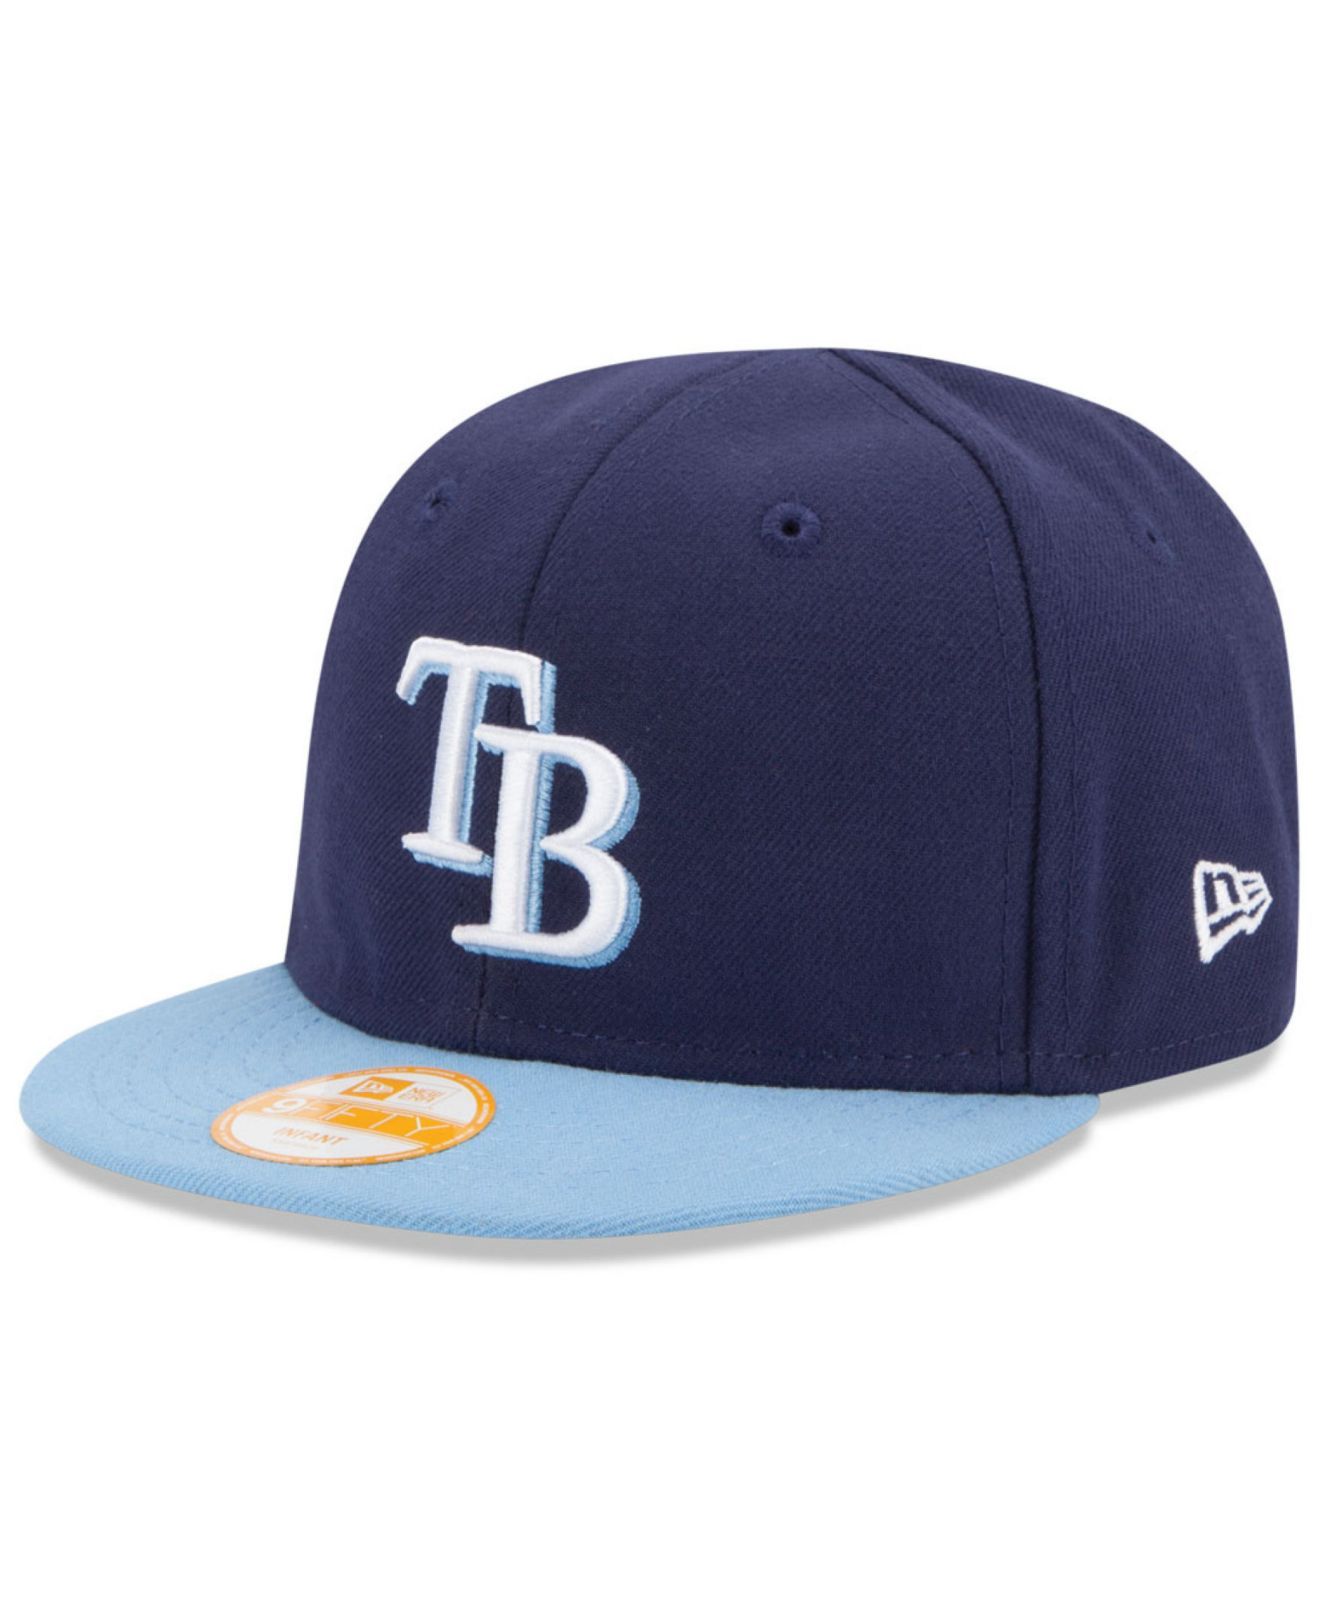 check out 16587 b776d Lyst - KTZ Babies  Tampa Bay Rays 9fifty Snapback Cap in Blue